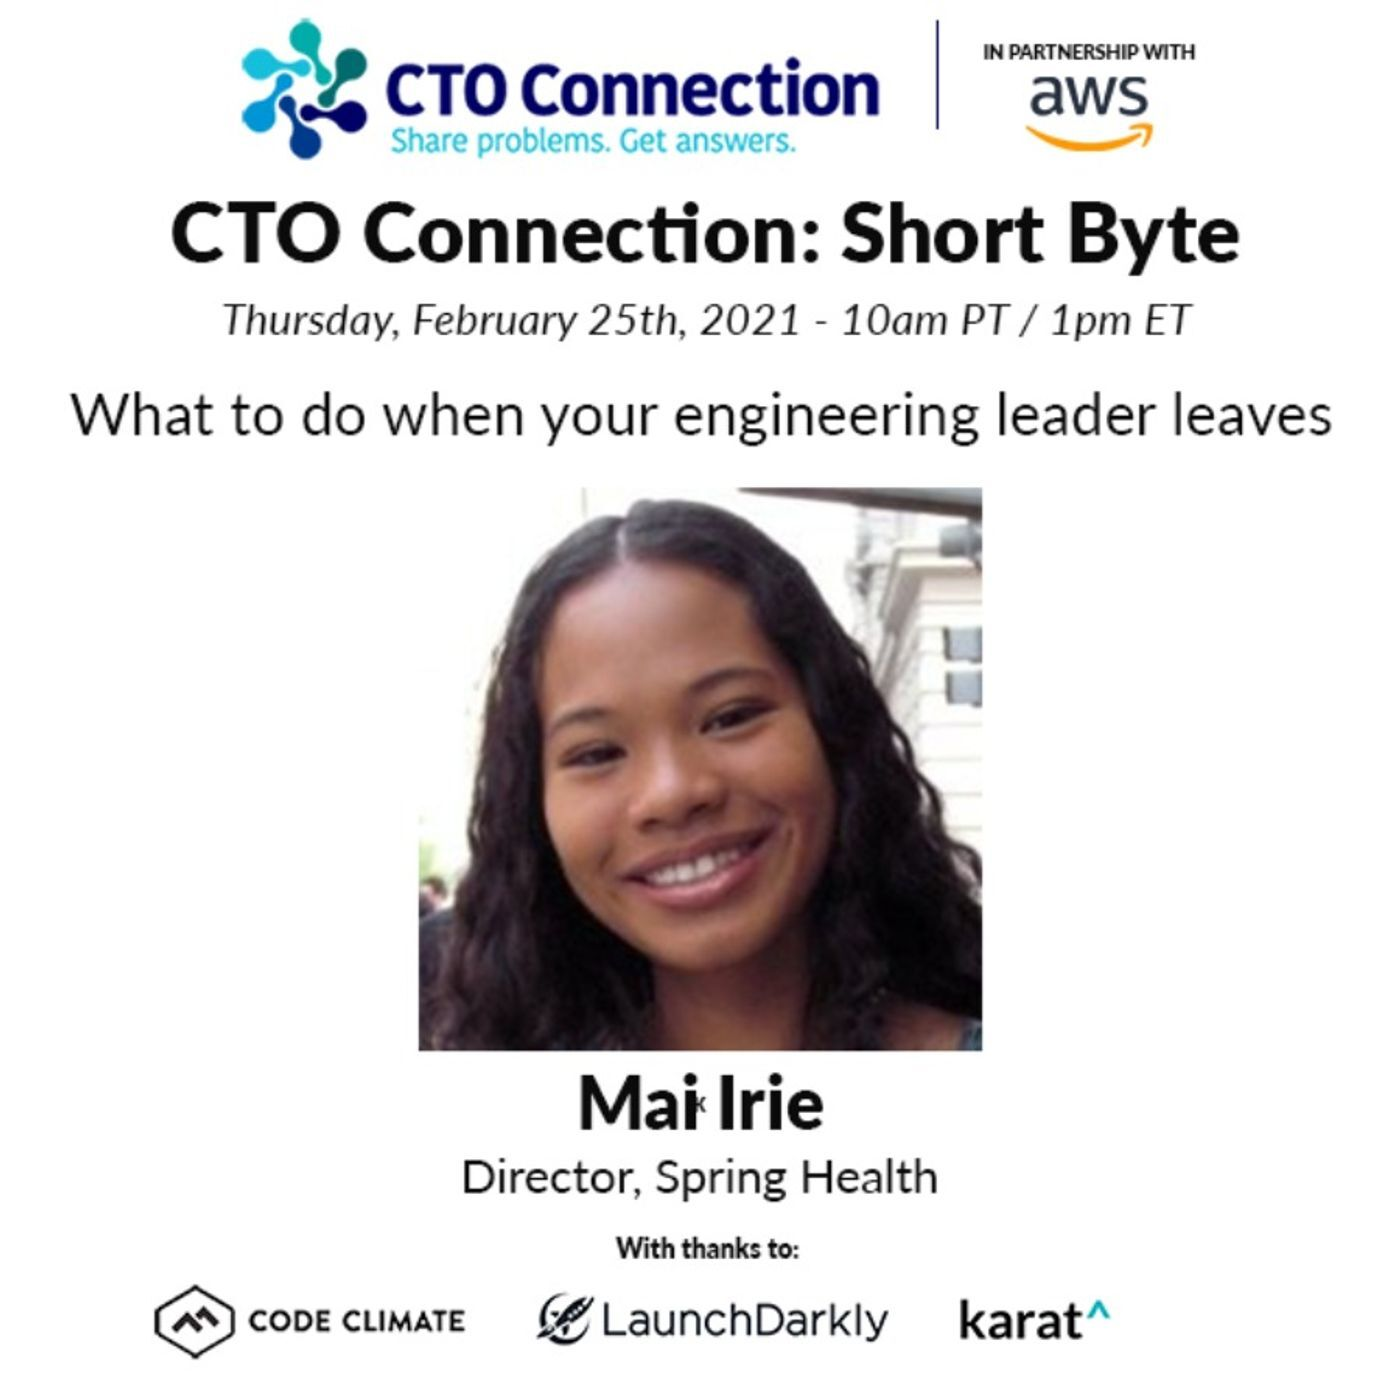 Short Byte: Mai Irie - What to do when your engineering leader leaves